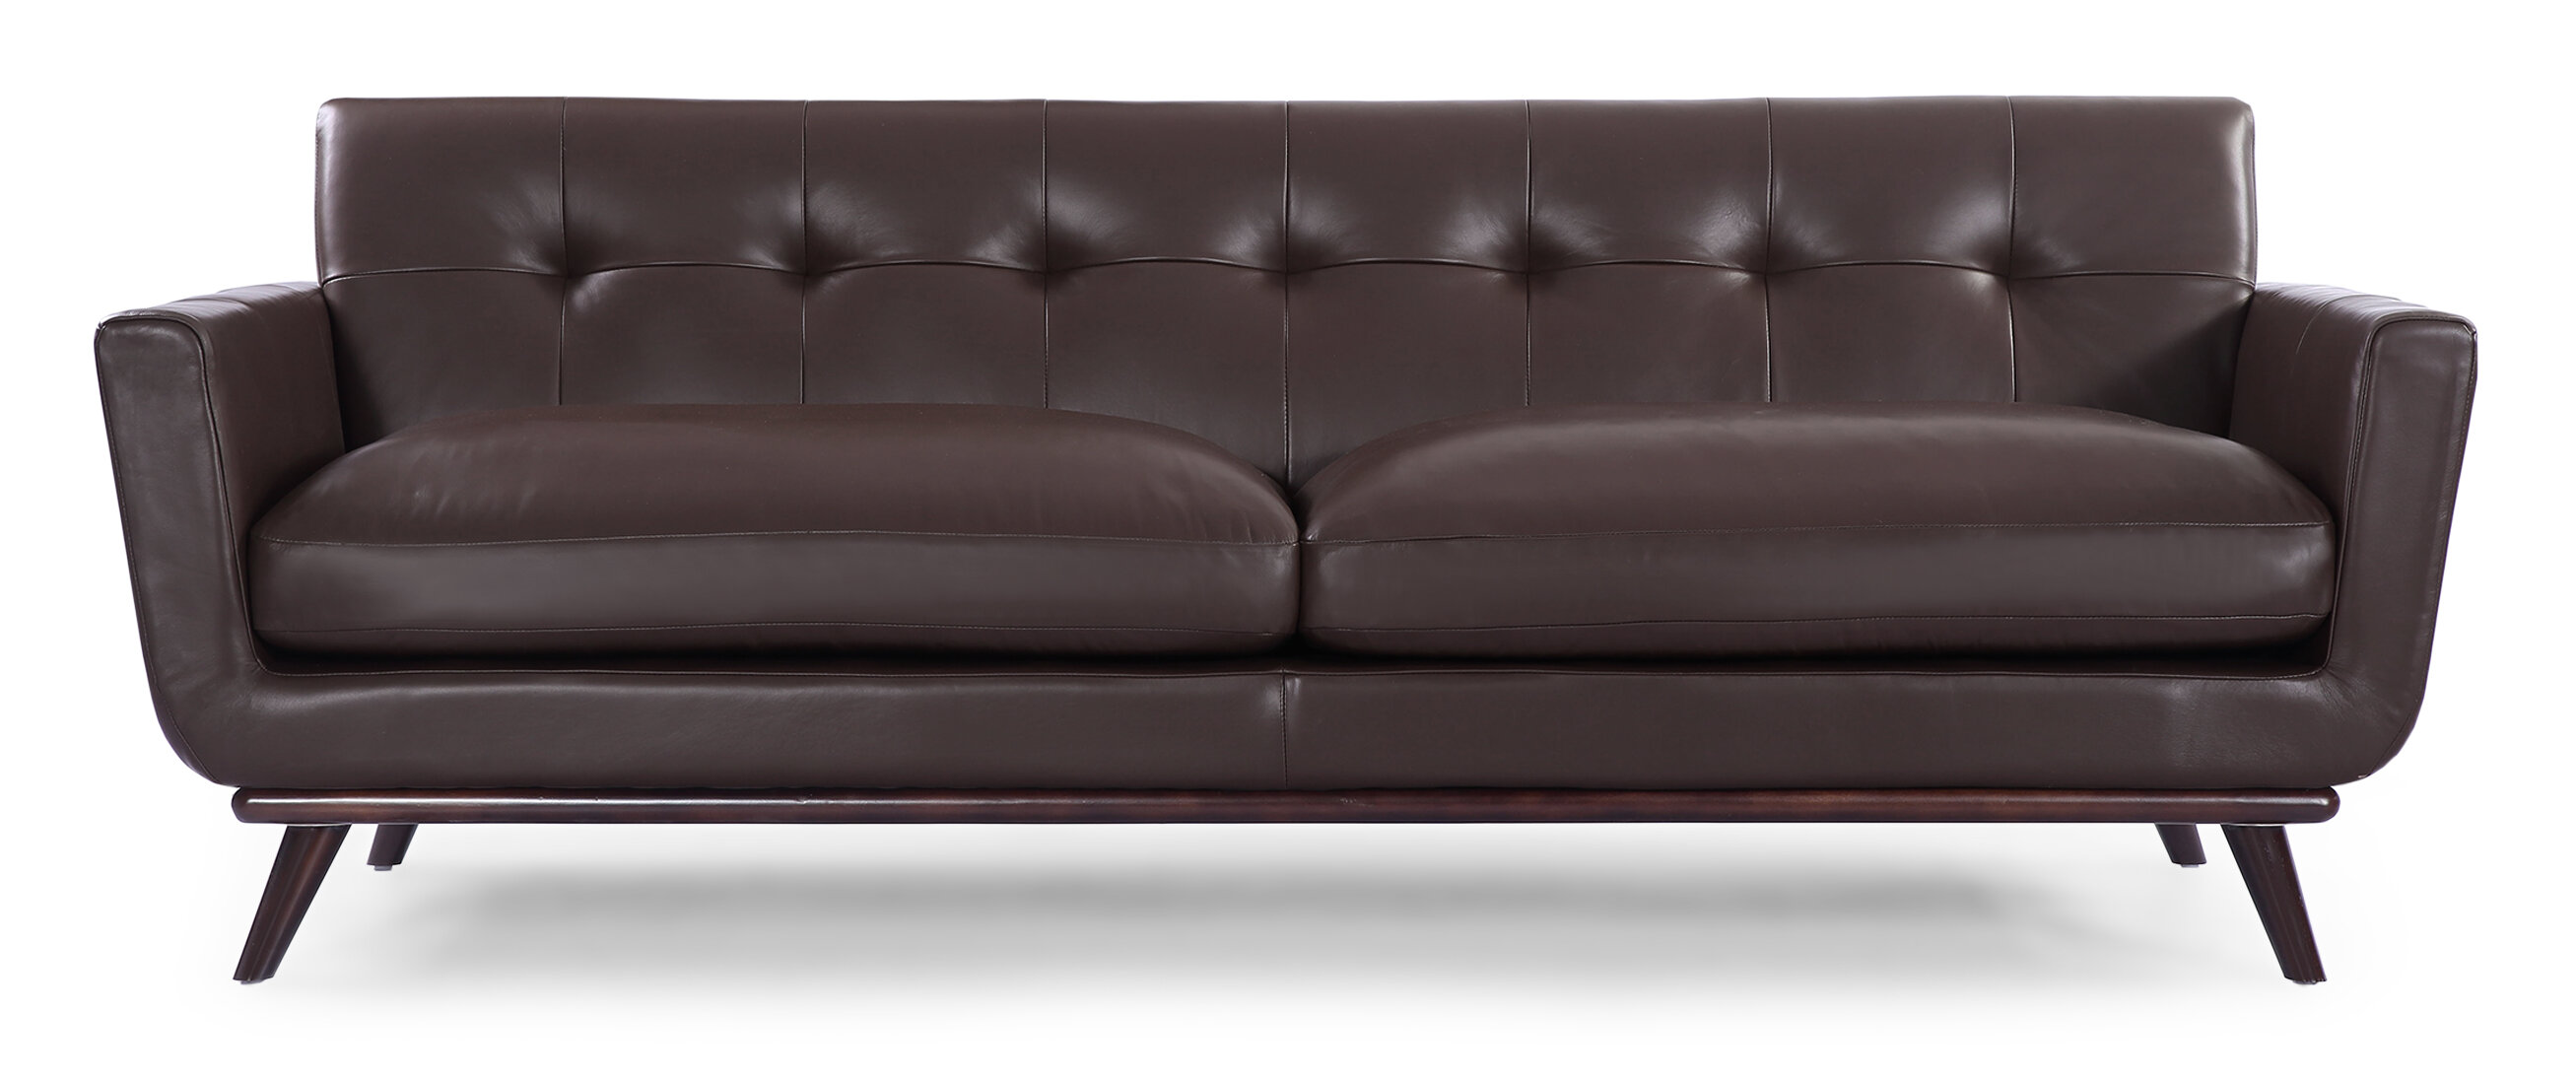 Corrigan studio luther mid century modern vintage leather sofa reviews wayfair